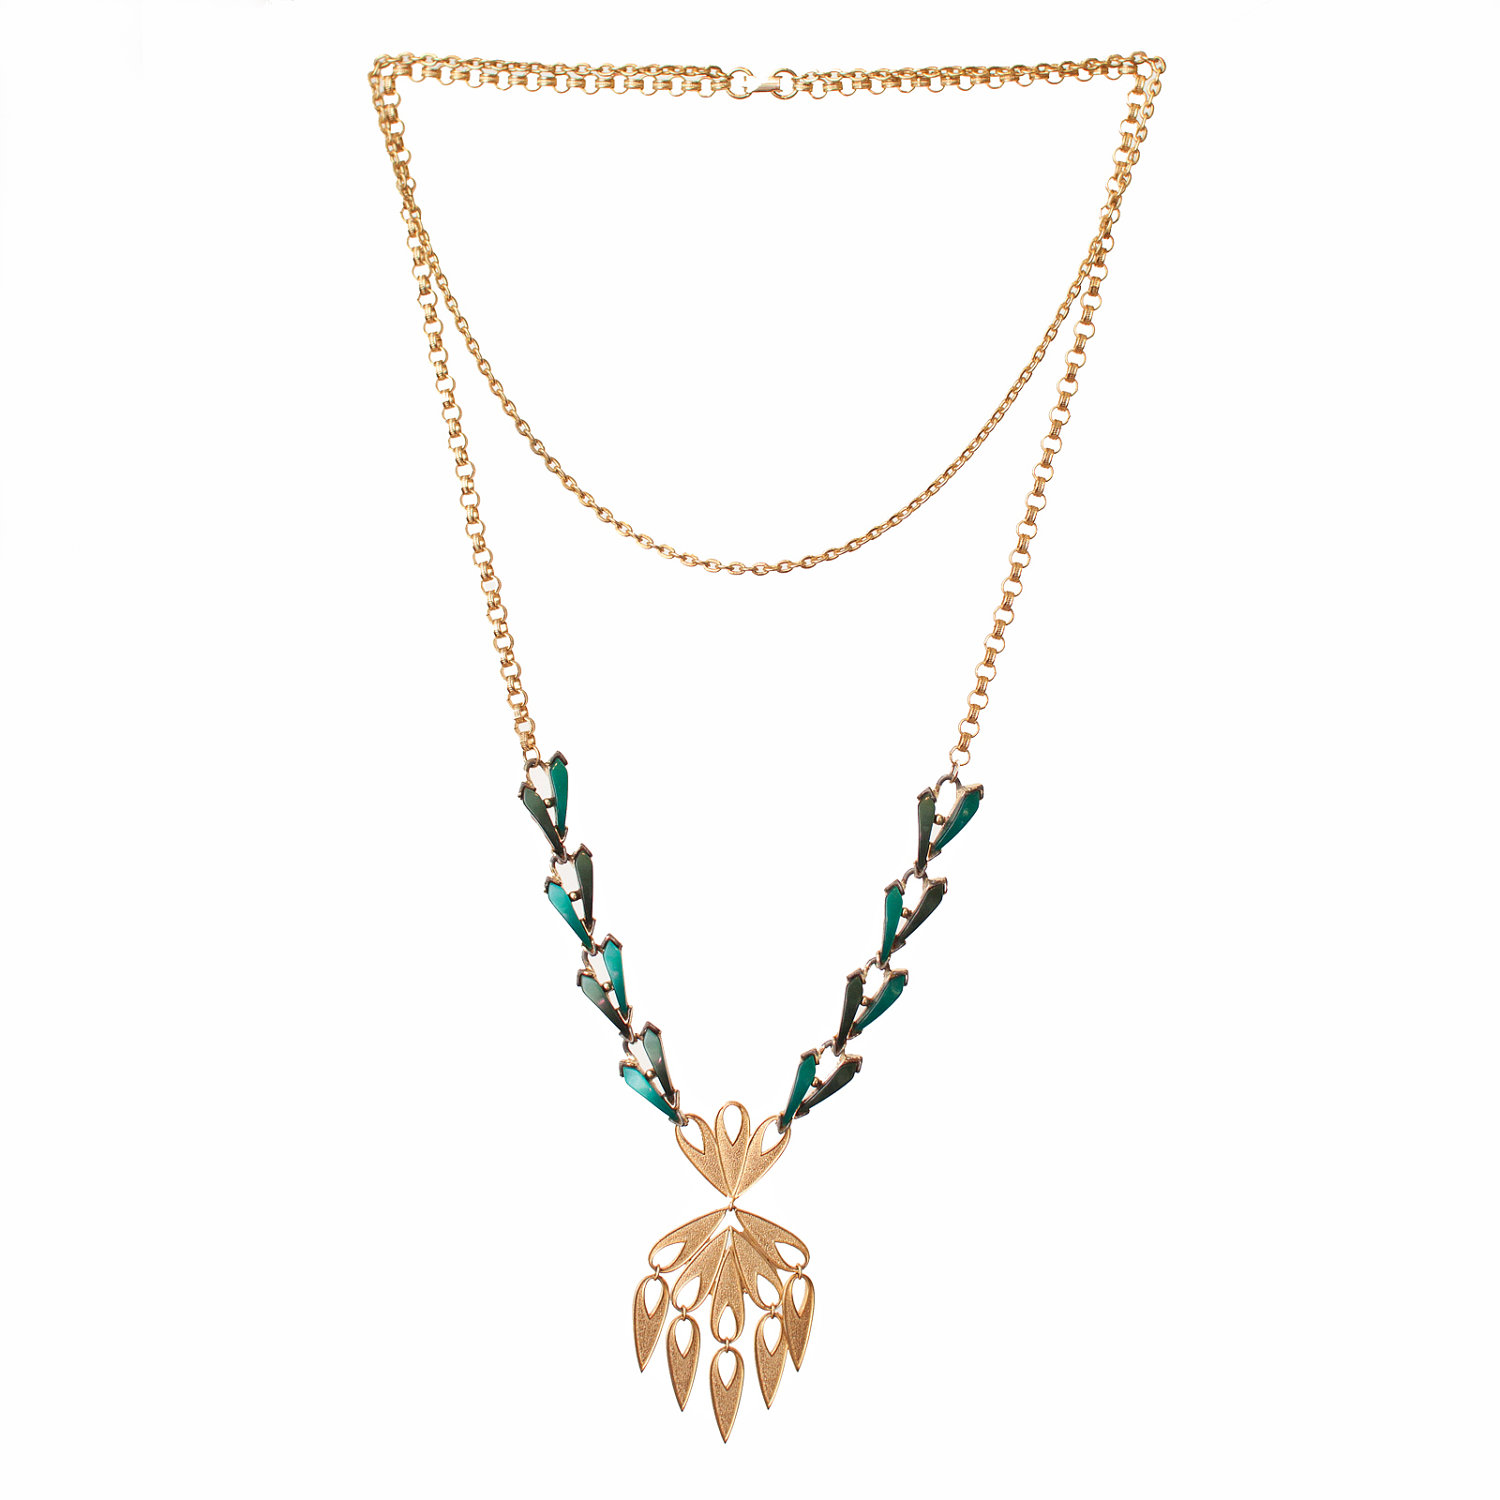 Repurposed Gold & Green Necklace with Amazing Pendant - $60.00 USD